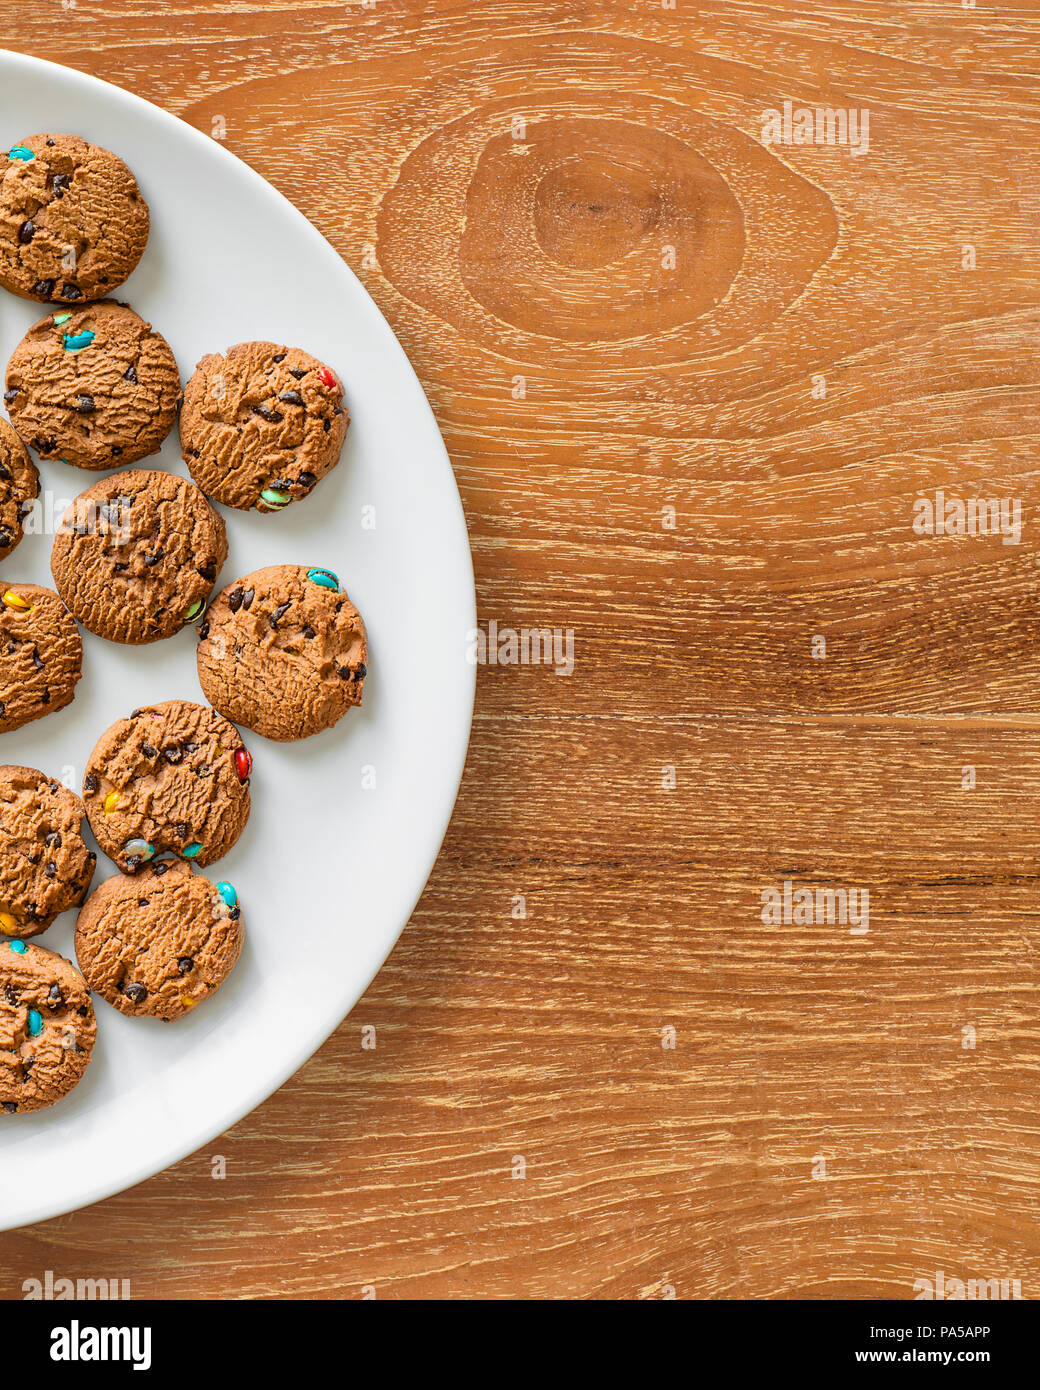 Lay flat photo of cookies on white plate. Stock Photo